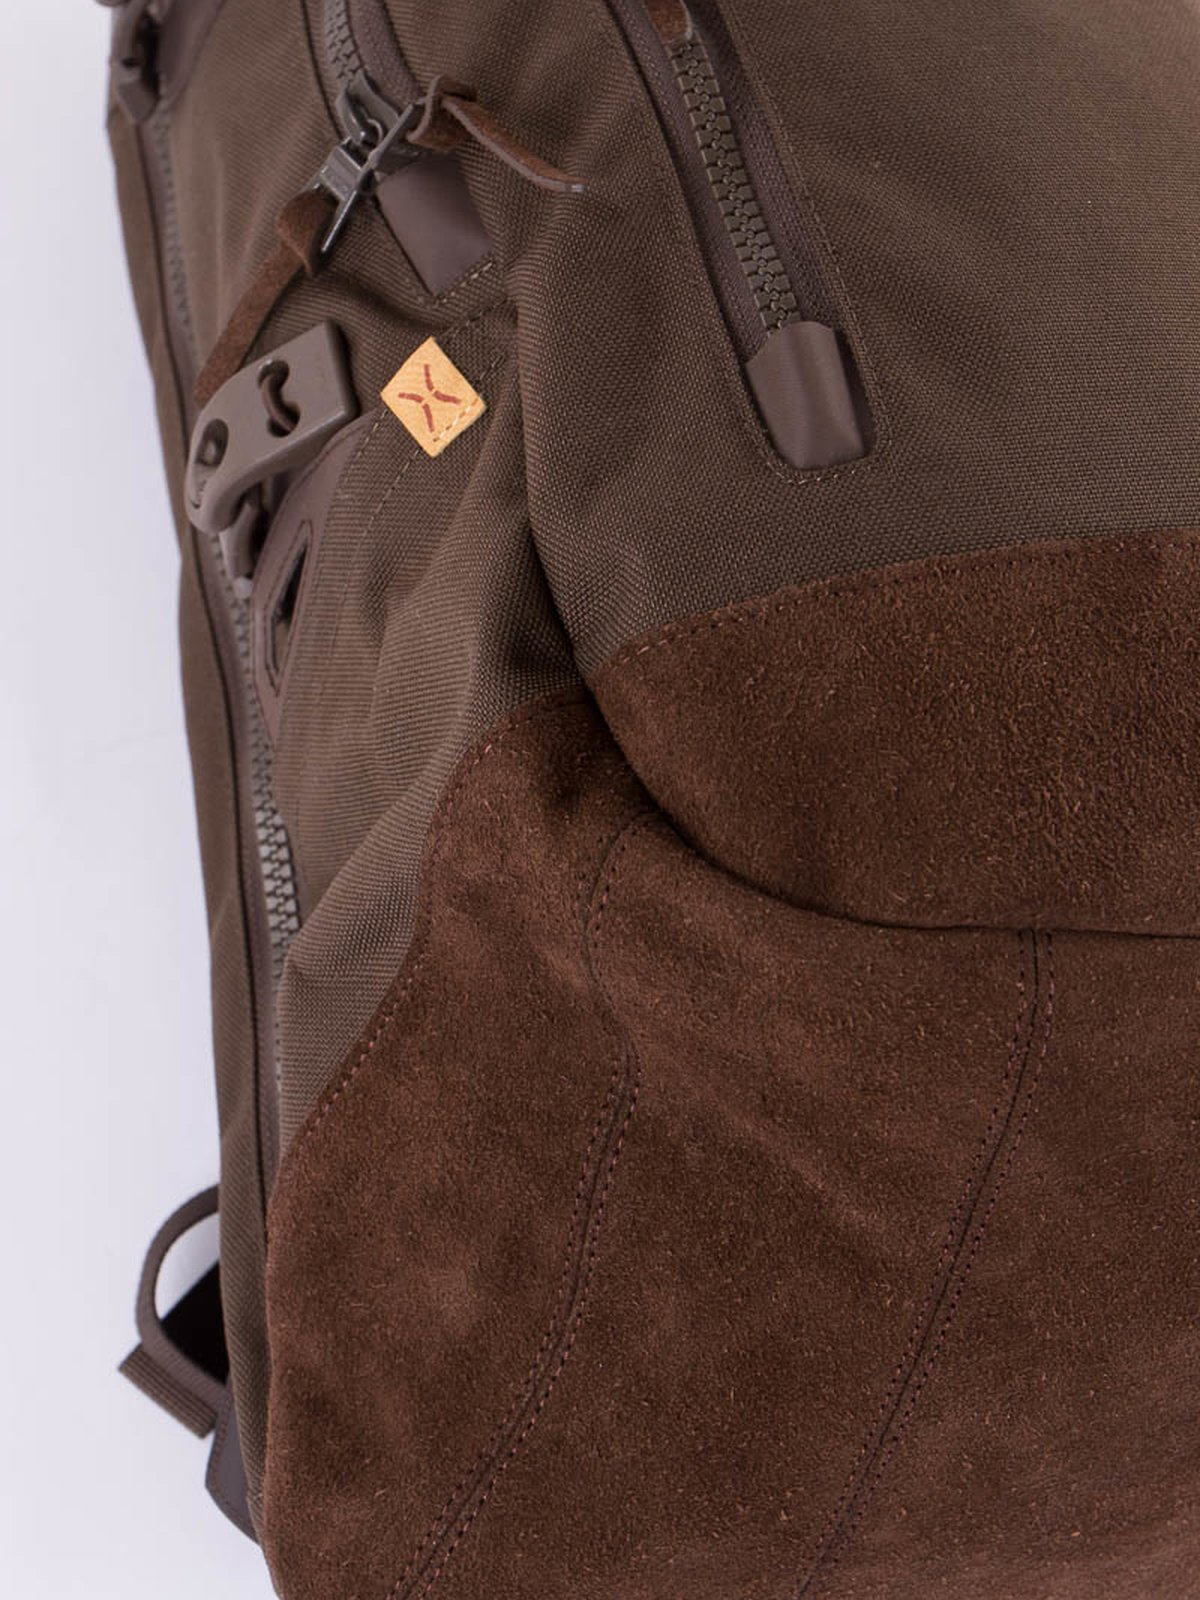 Brown 20L Cordura Backpack - Image 2